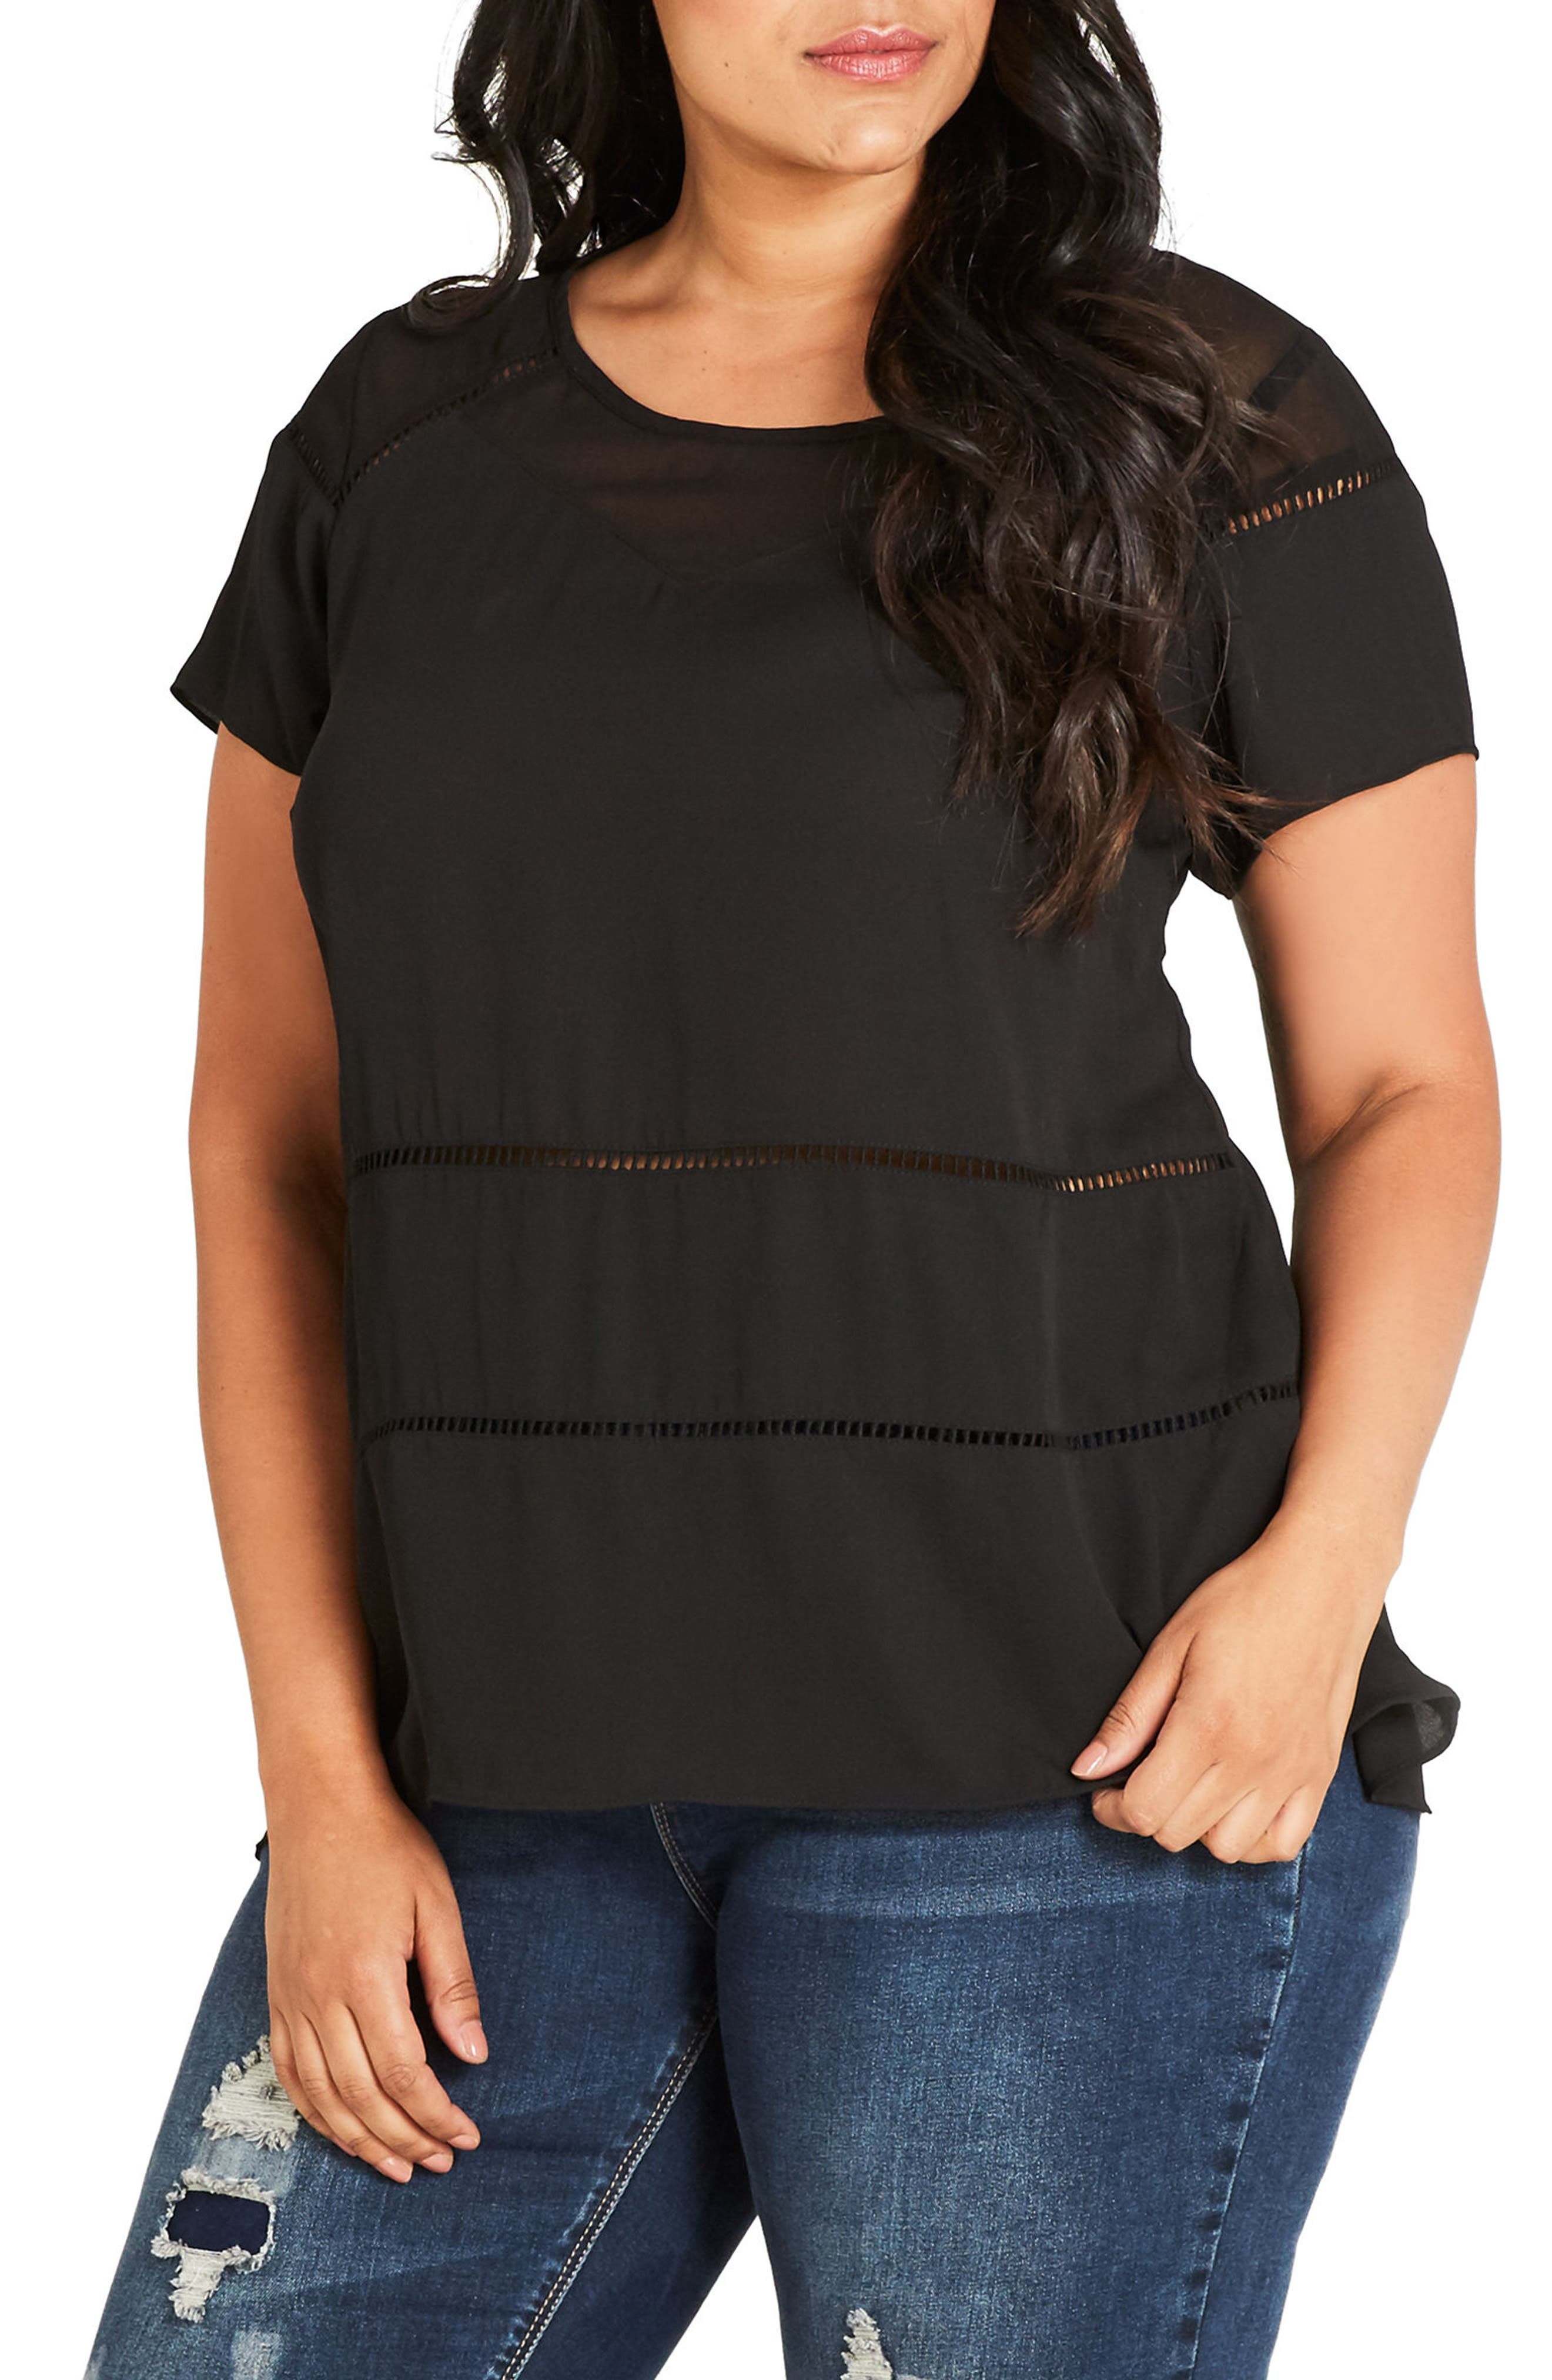 Alternate Image 1 Selected - City Chic Night Out Top (Plus Size)